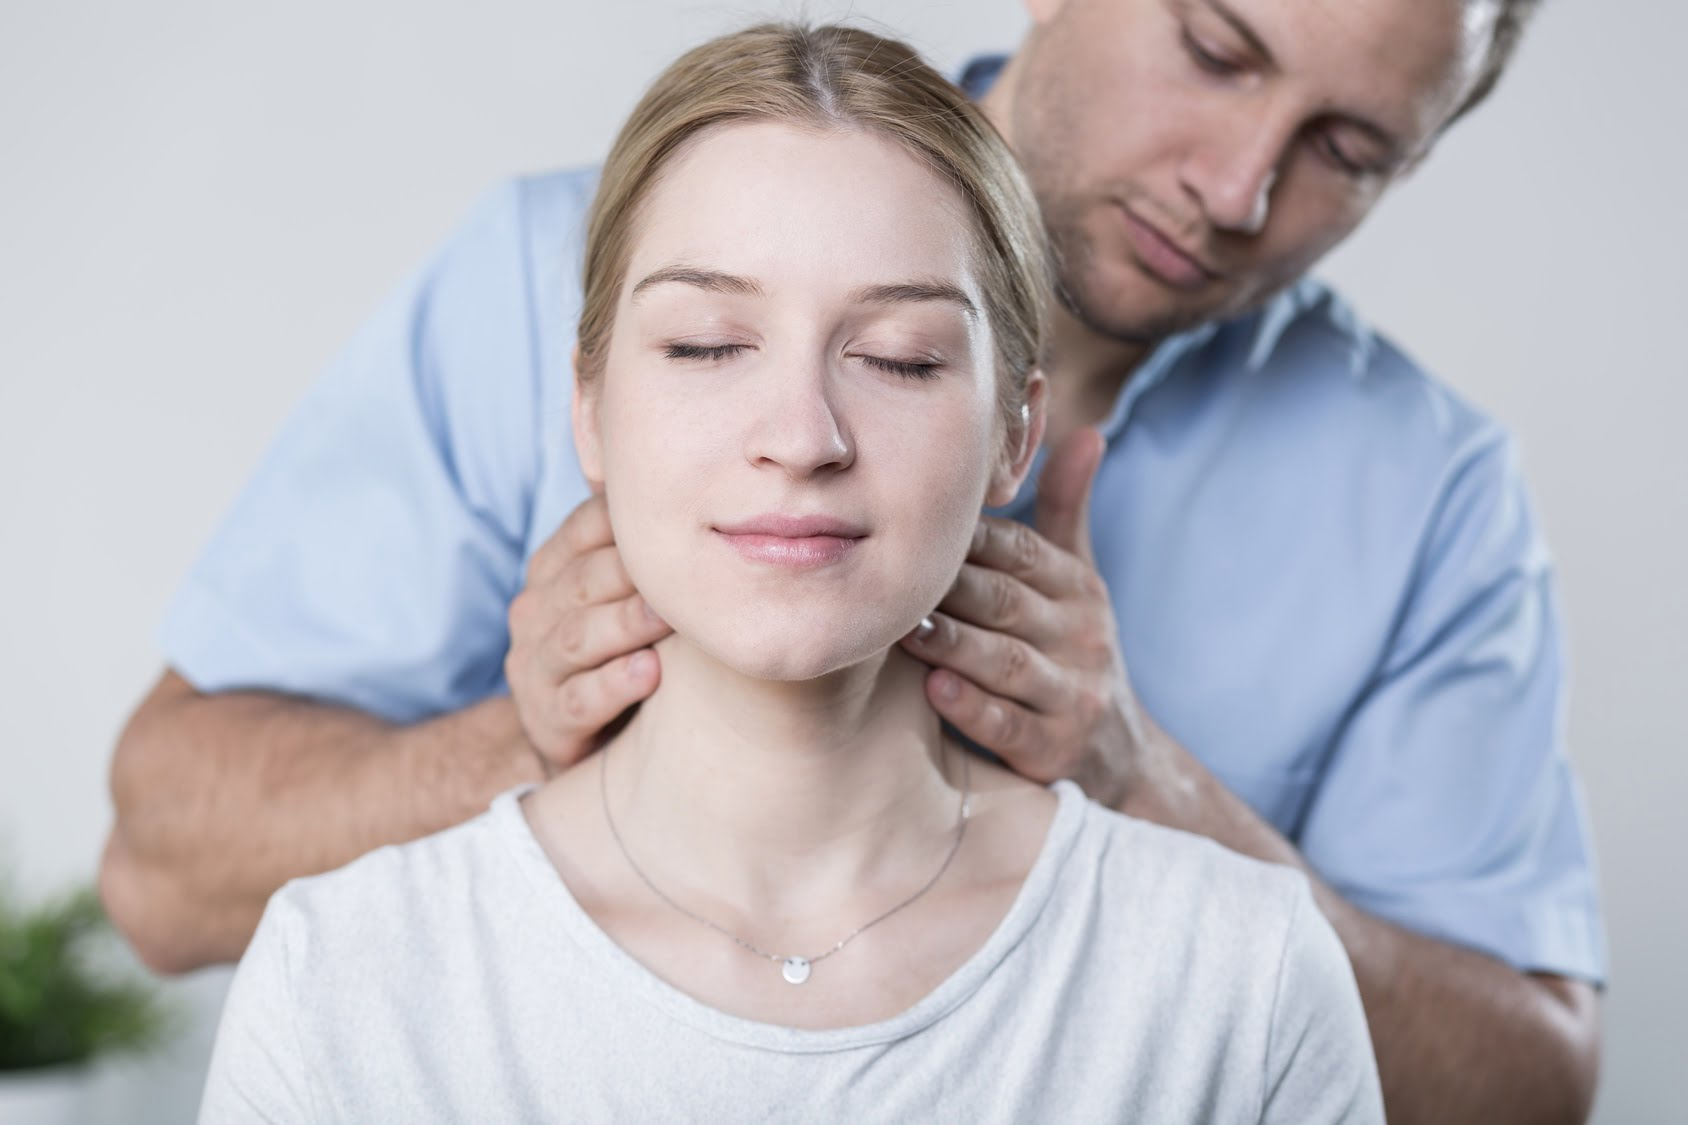 5 Ways to Alleviate Neck Discomfort in the Gym